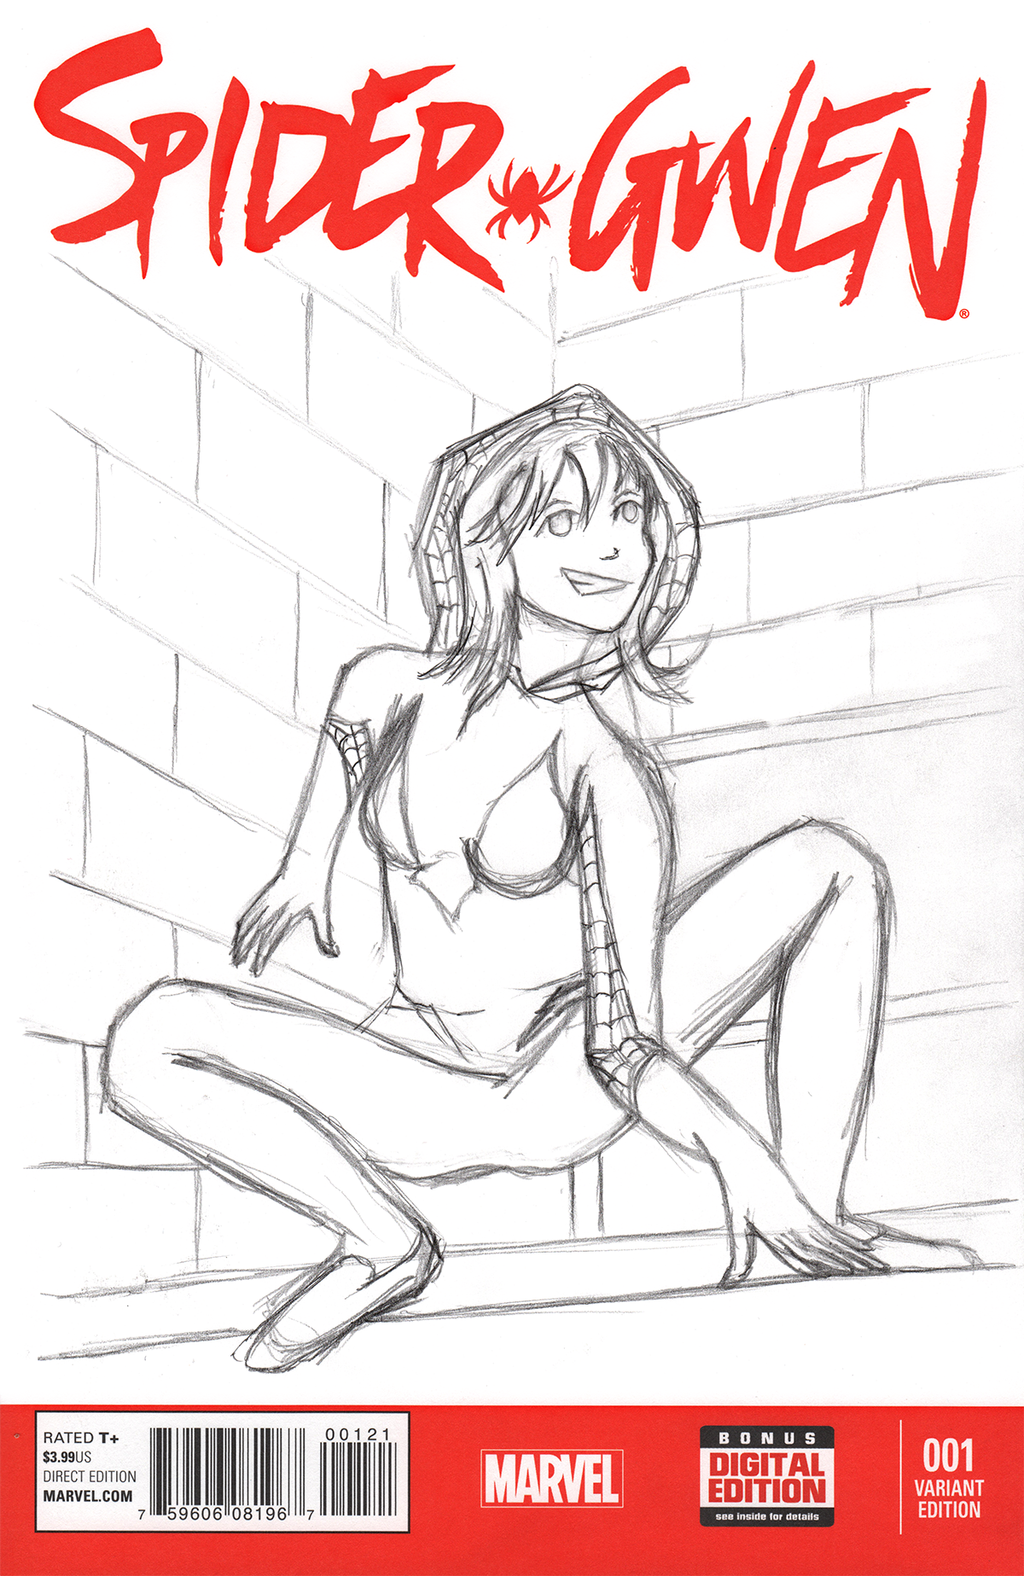 Spider-Gwen Sketch Cover 1 - WiP by tekitsune